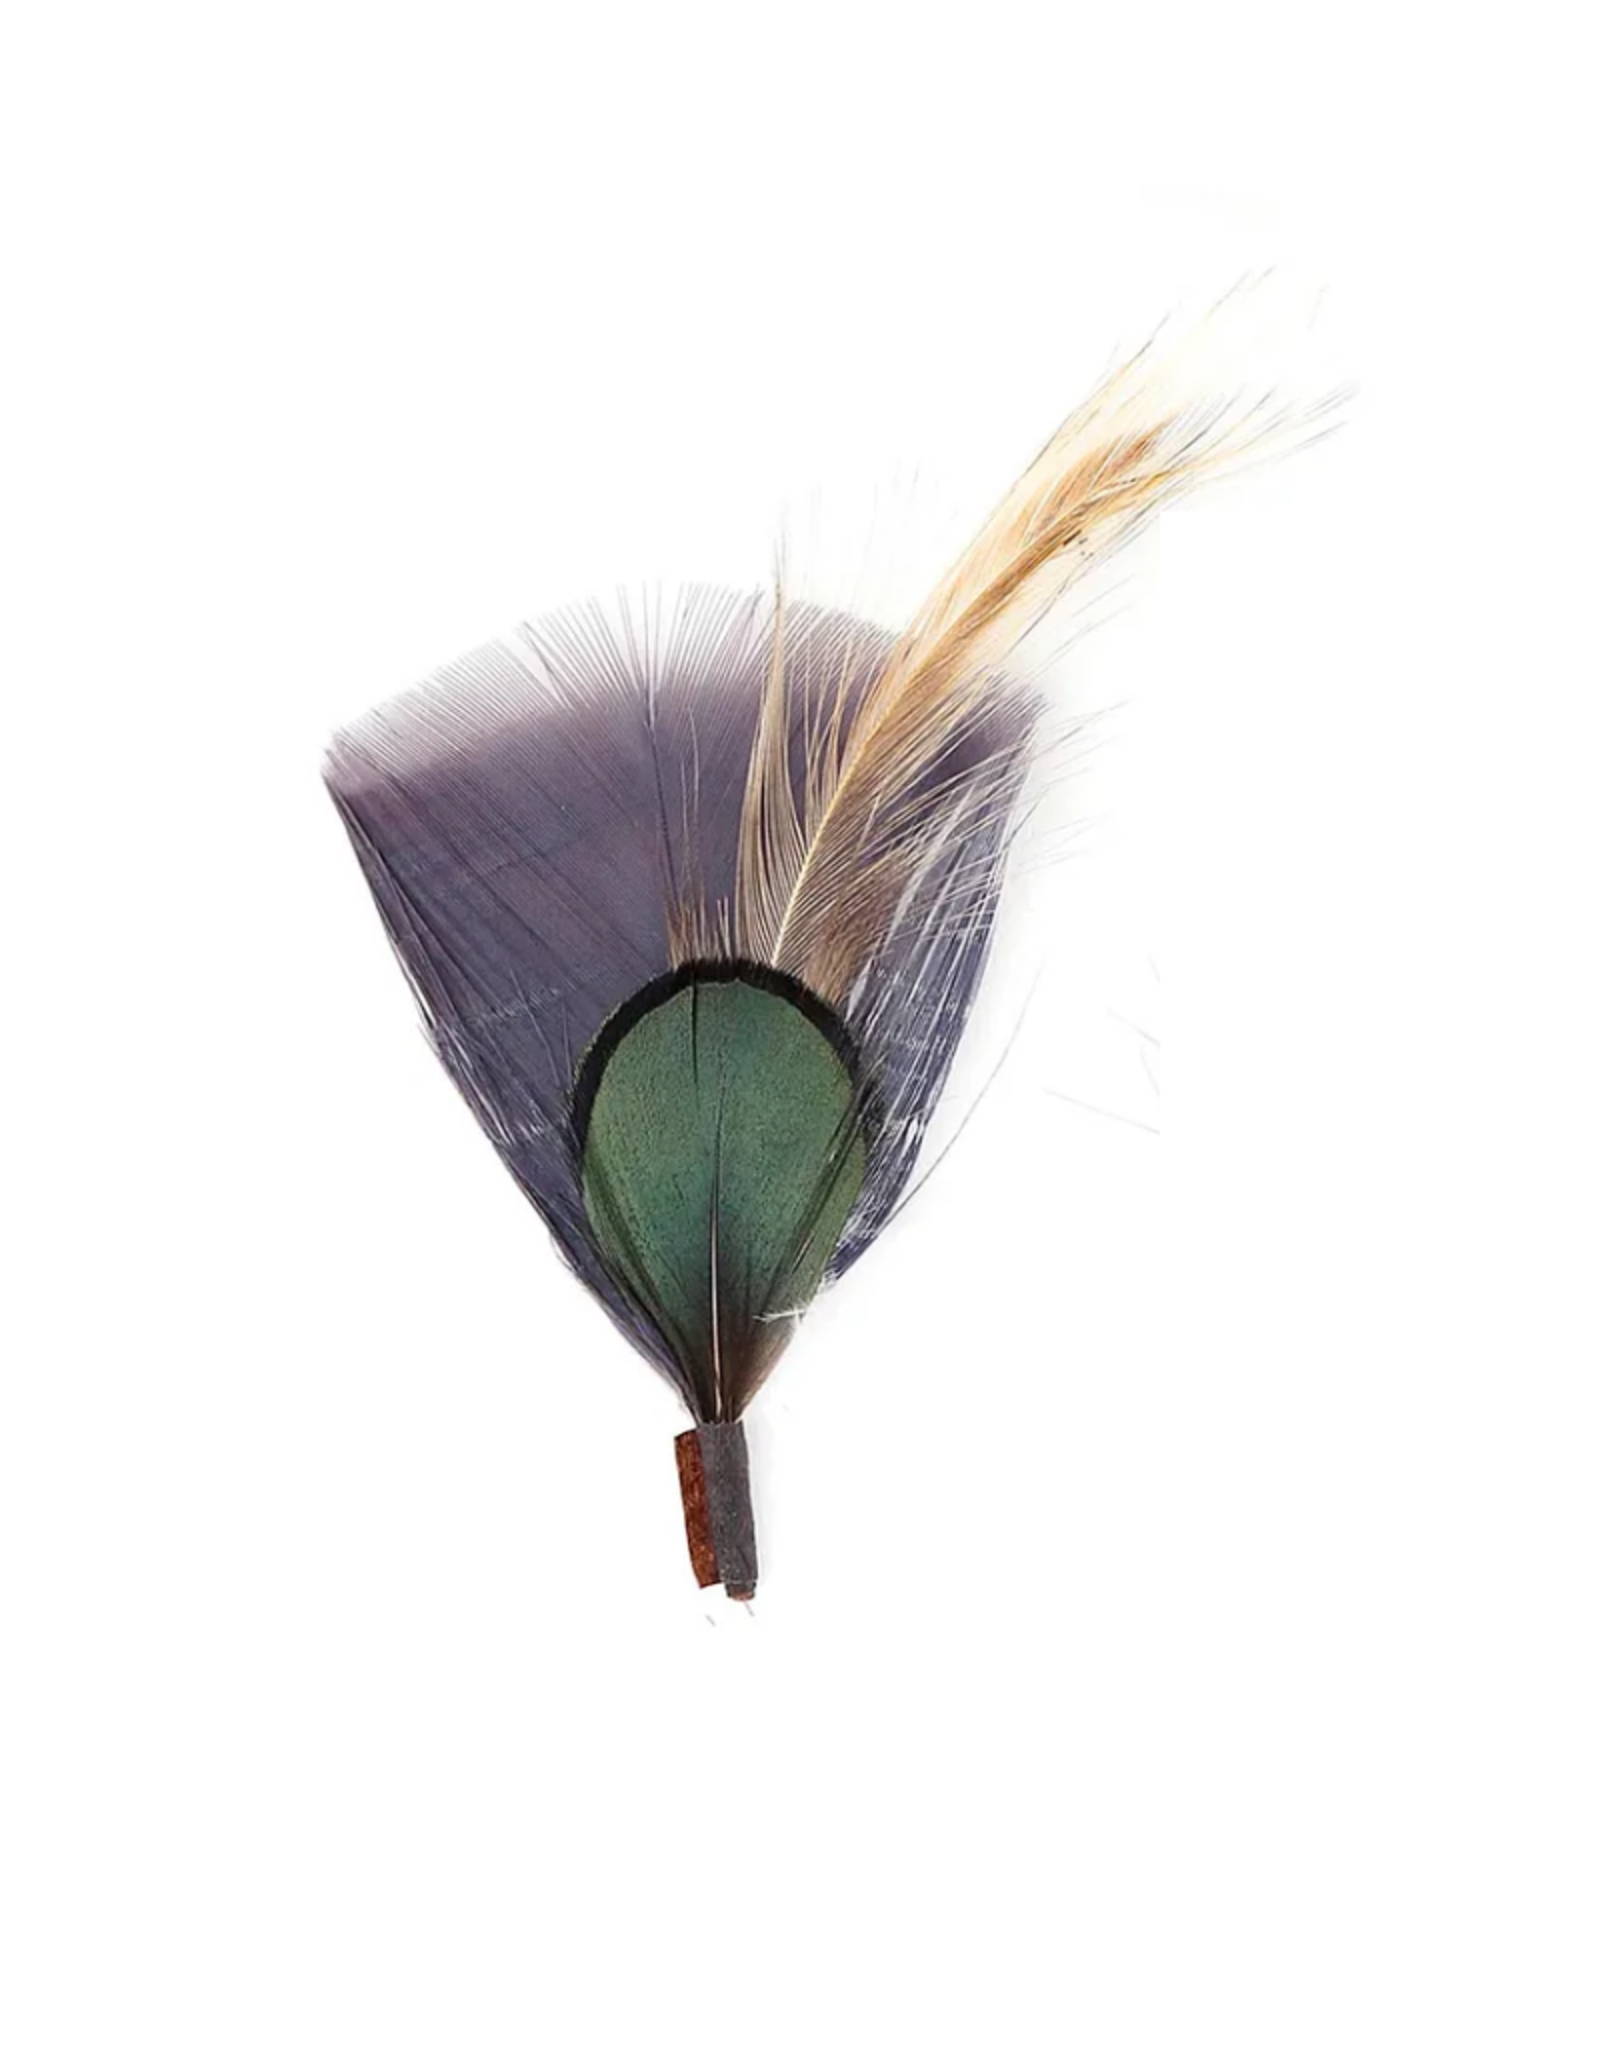 HAT TRIM-FEATHER-PHEASANT TURKEY HACKLE-CHARCOAL/NATURAL